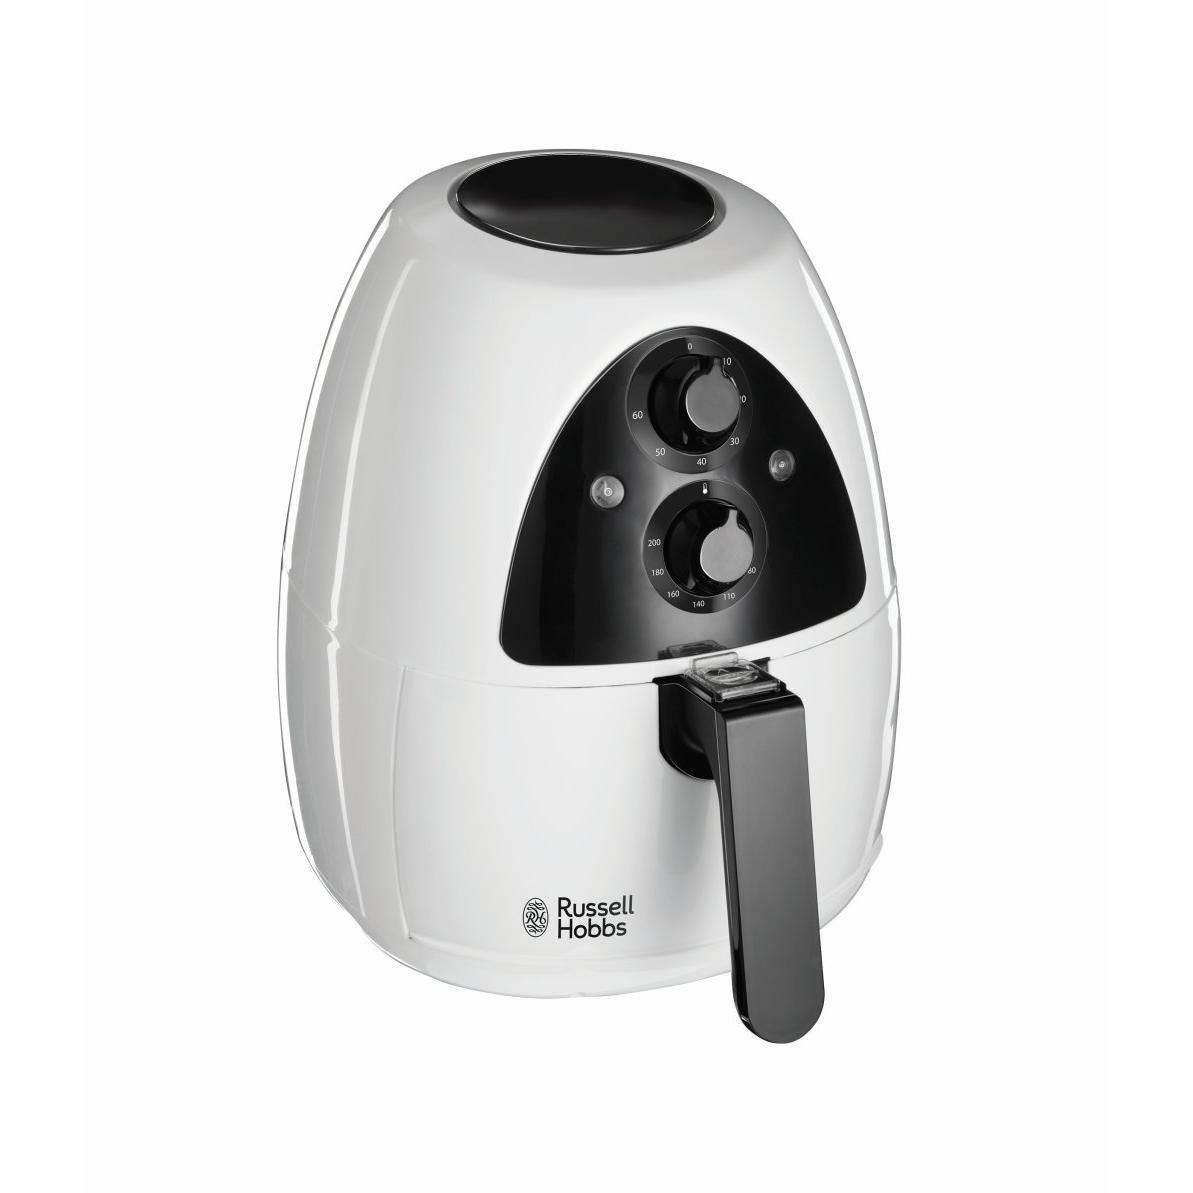 Russell Hobbs - 20810 - Friteuse sans huile Purify